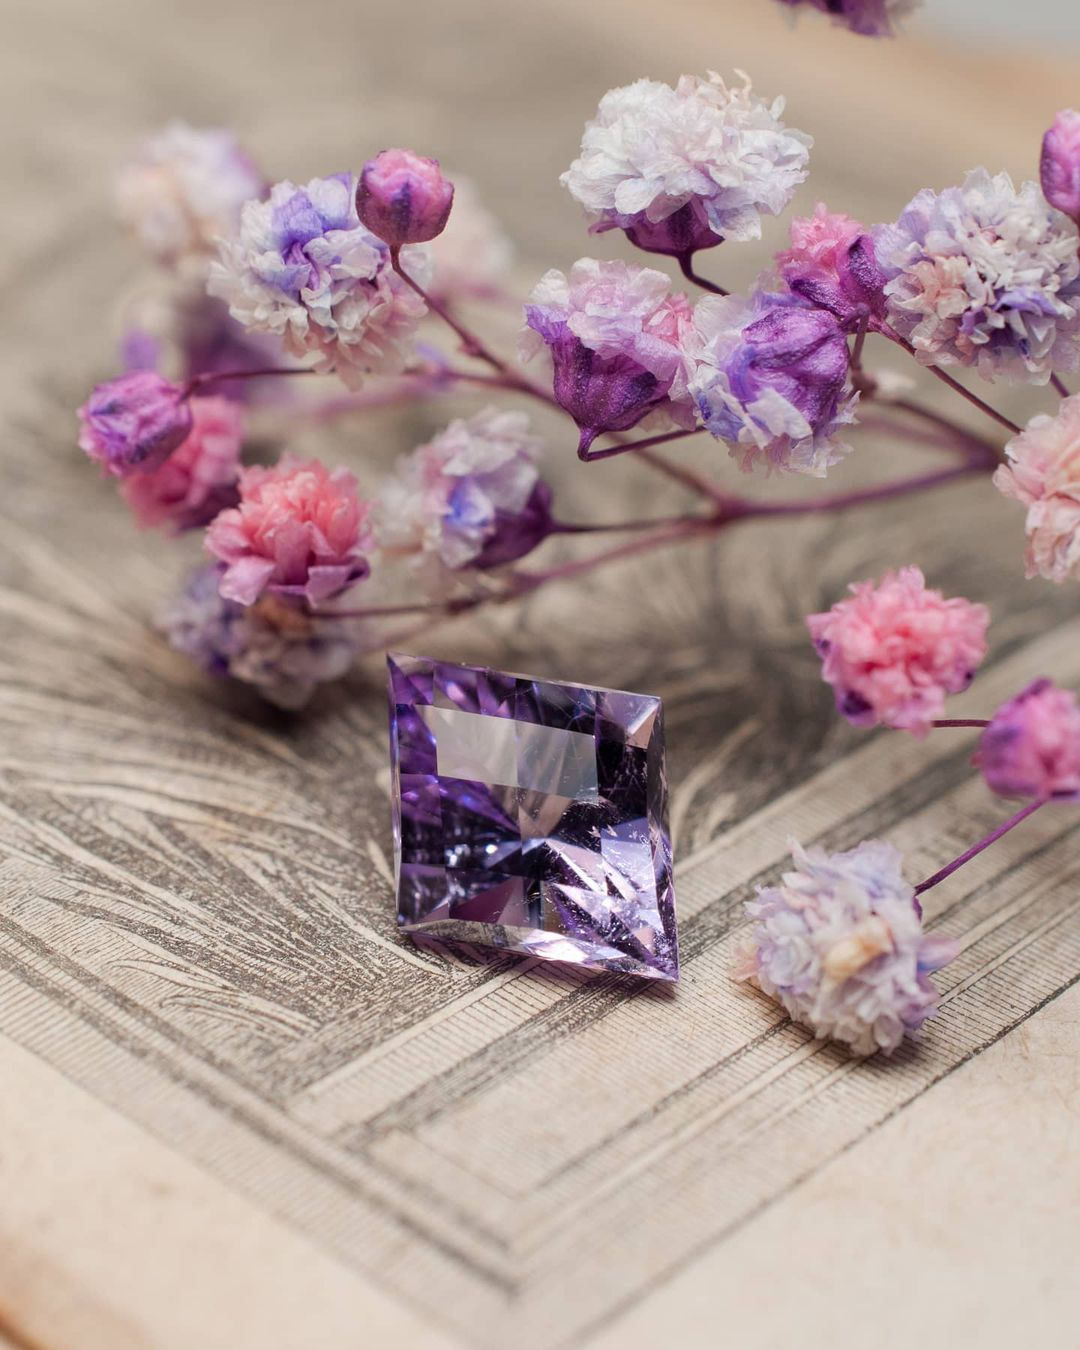 Faceted Amethyst from Mont-Blanc, France